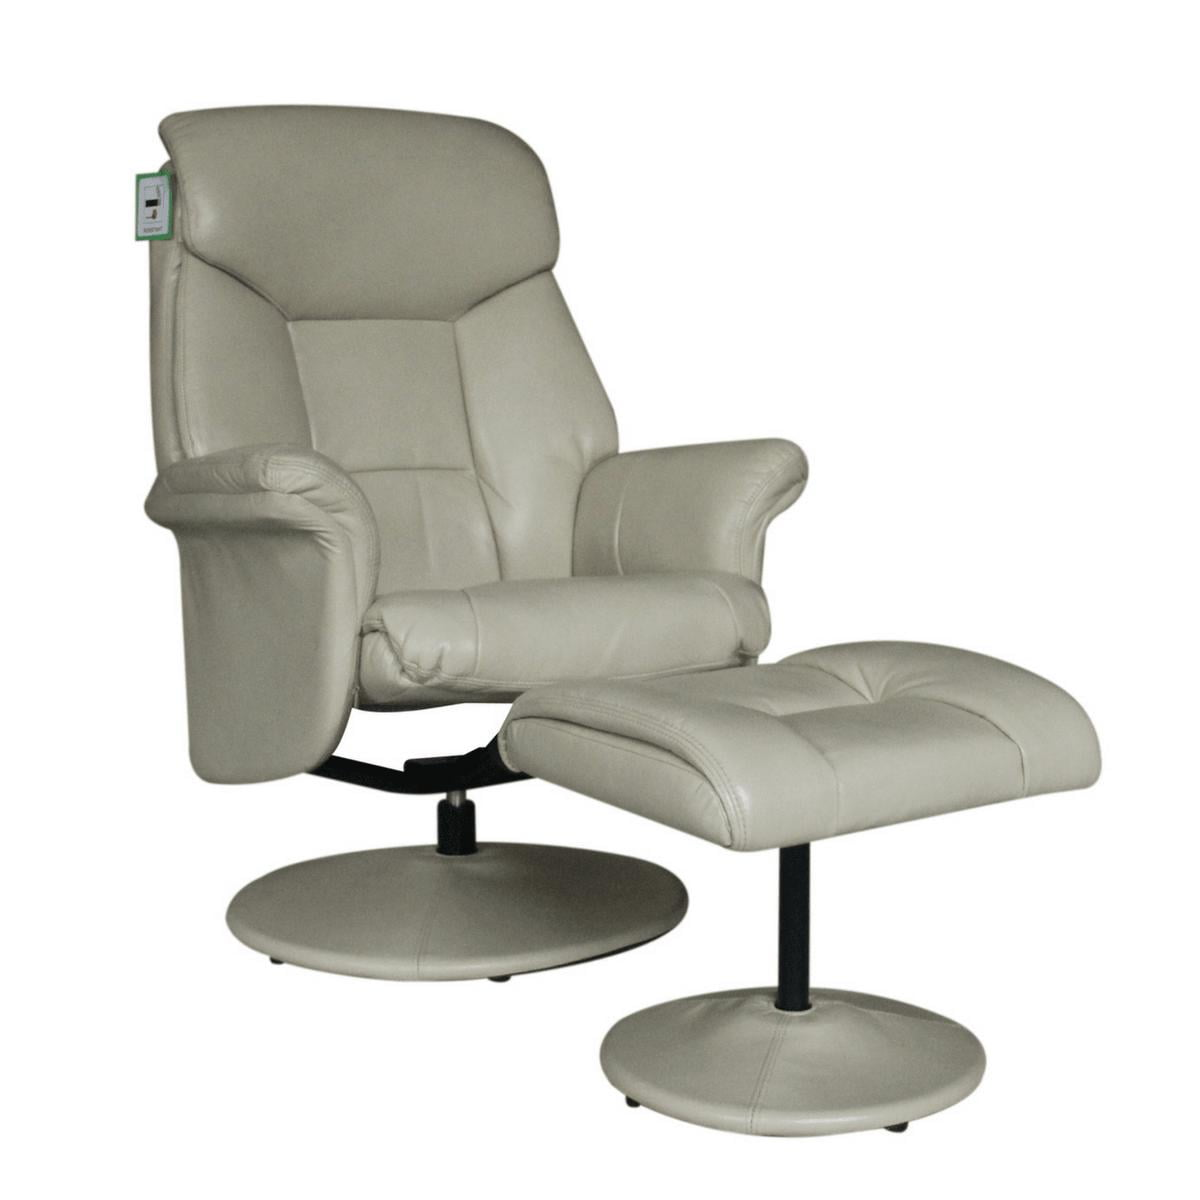 Sneem swivel chair with footstool